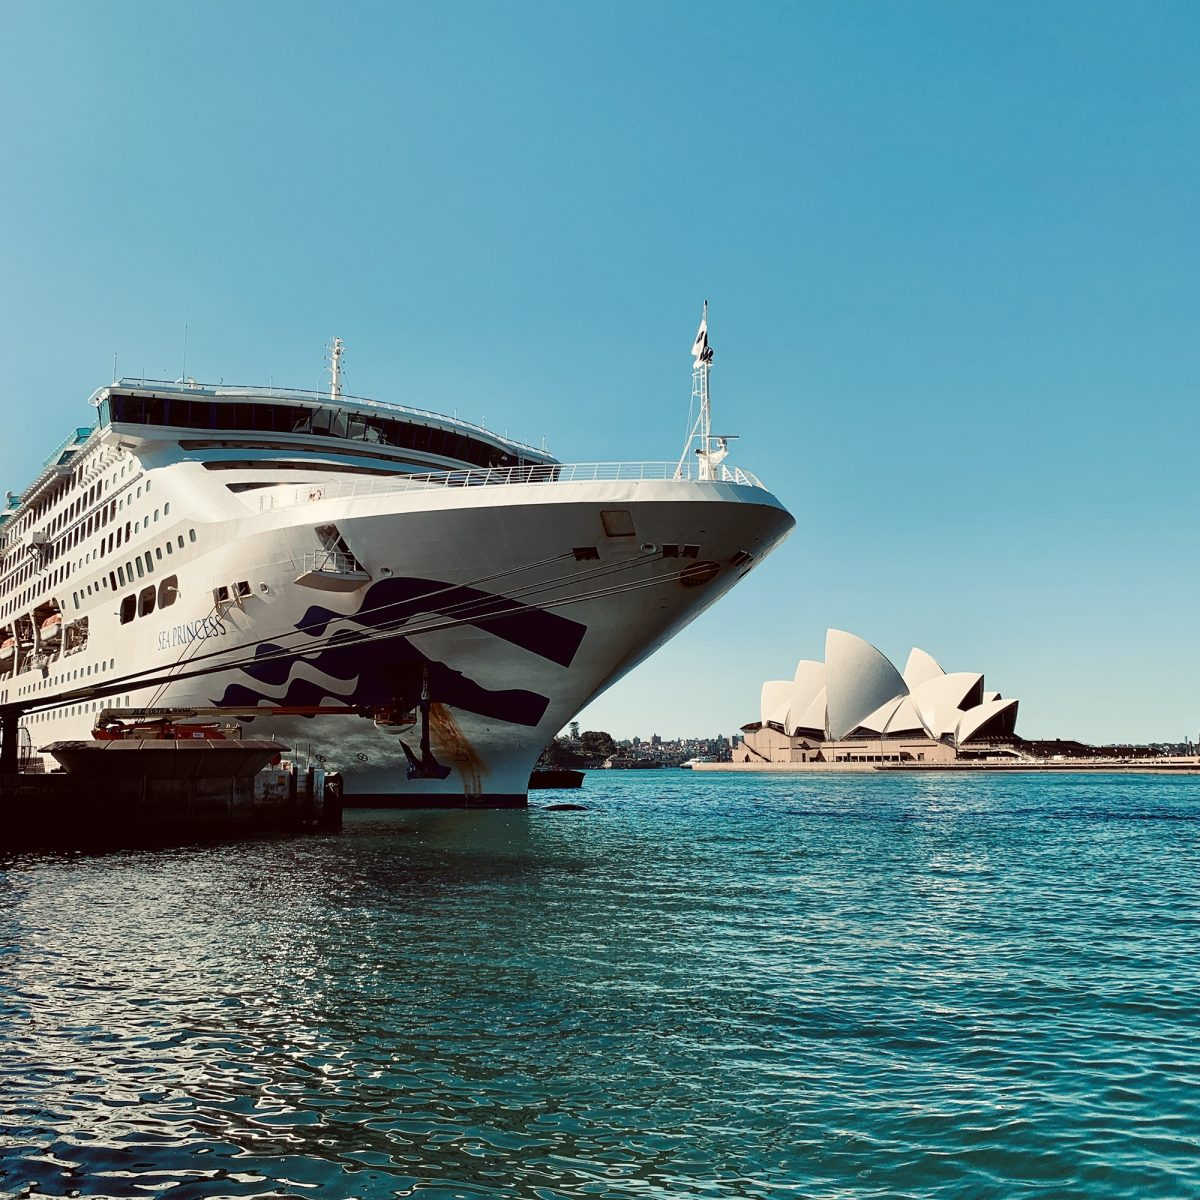 Sea Princess starting her voyage across the world from Sydney